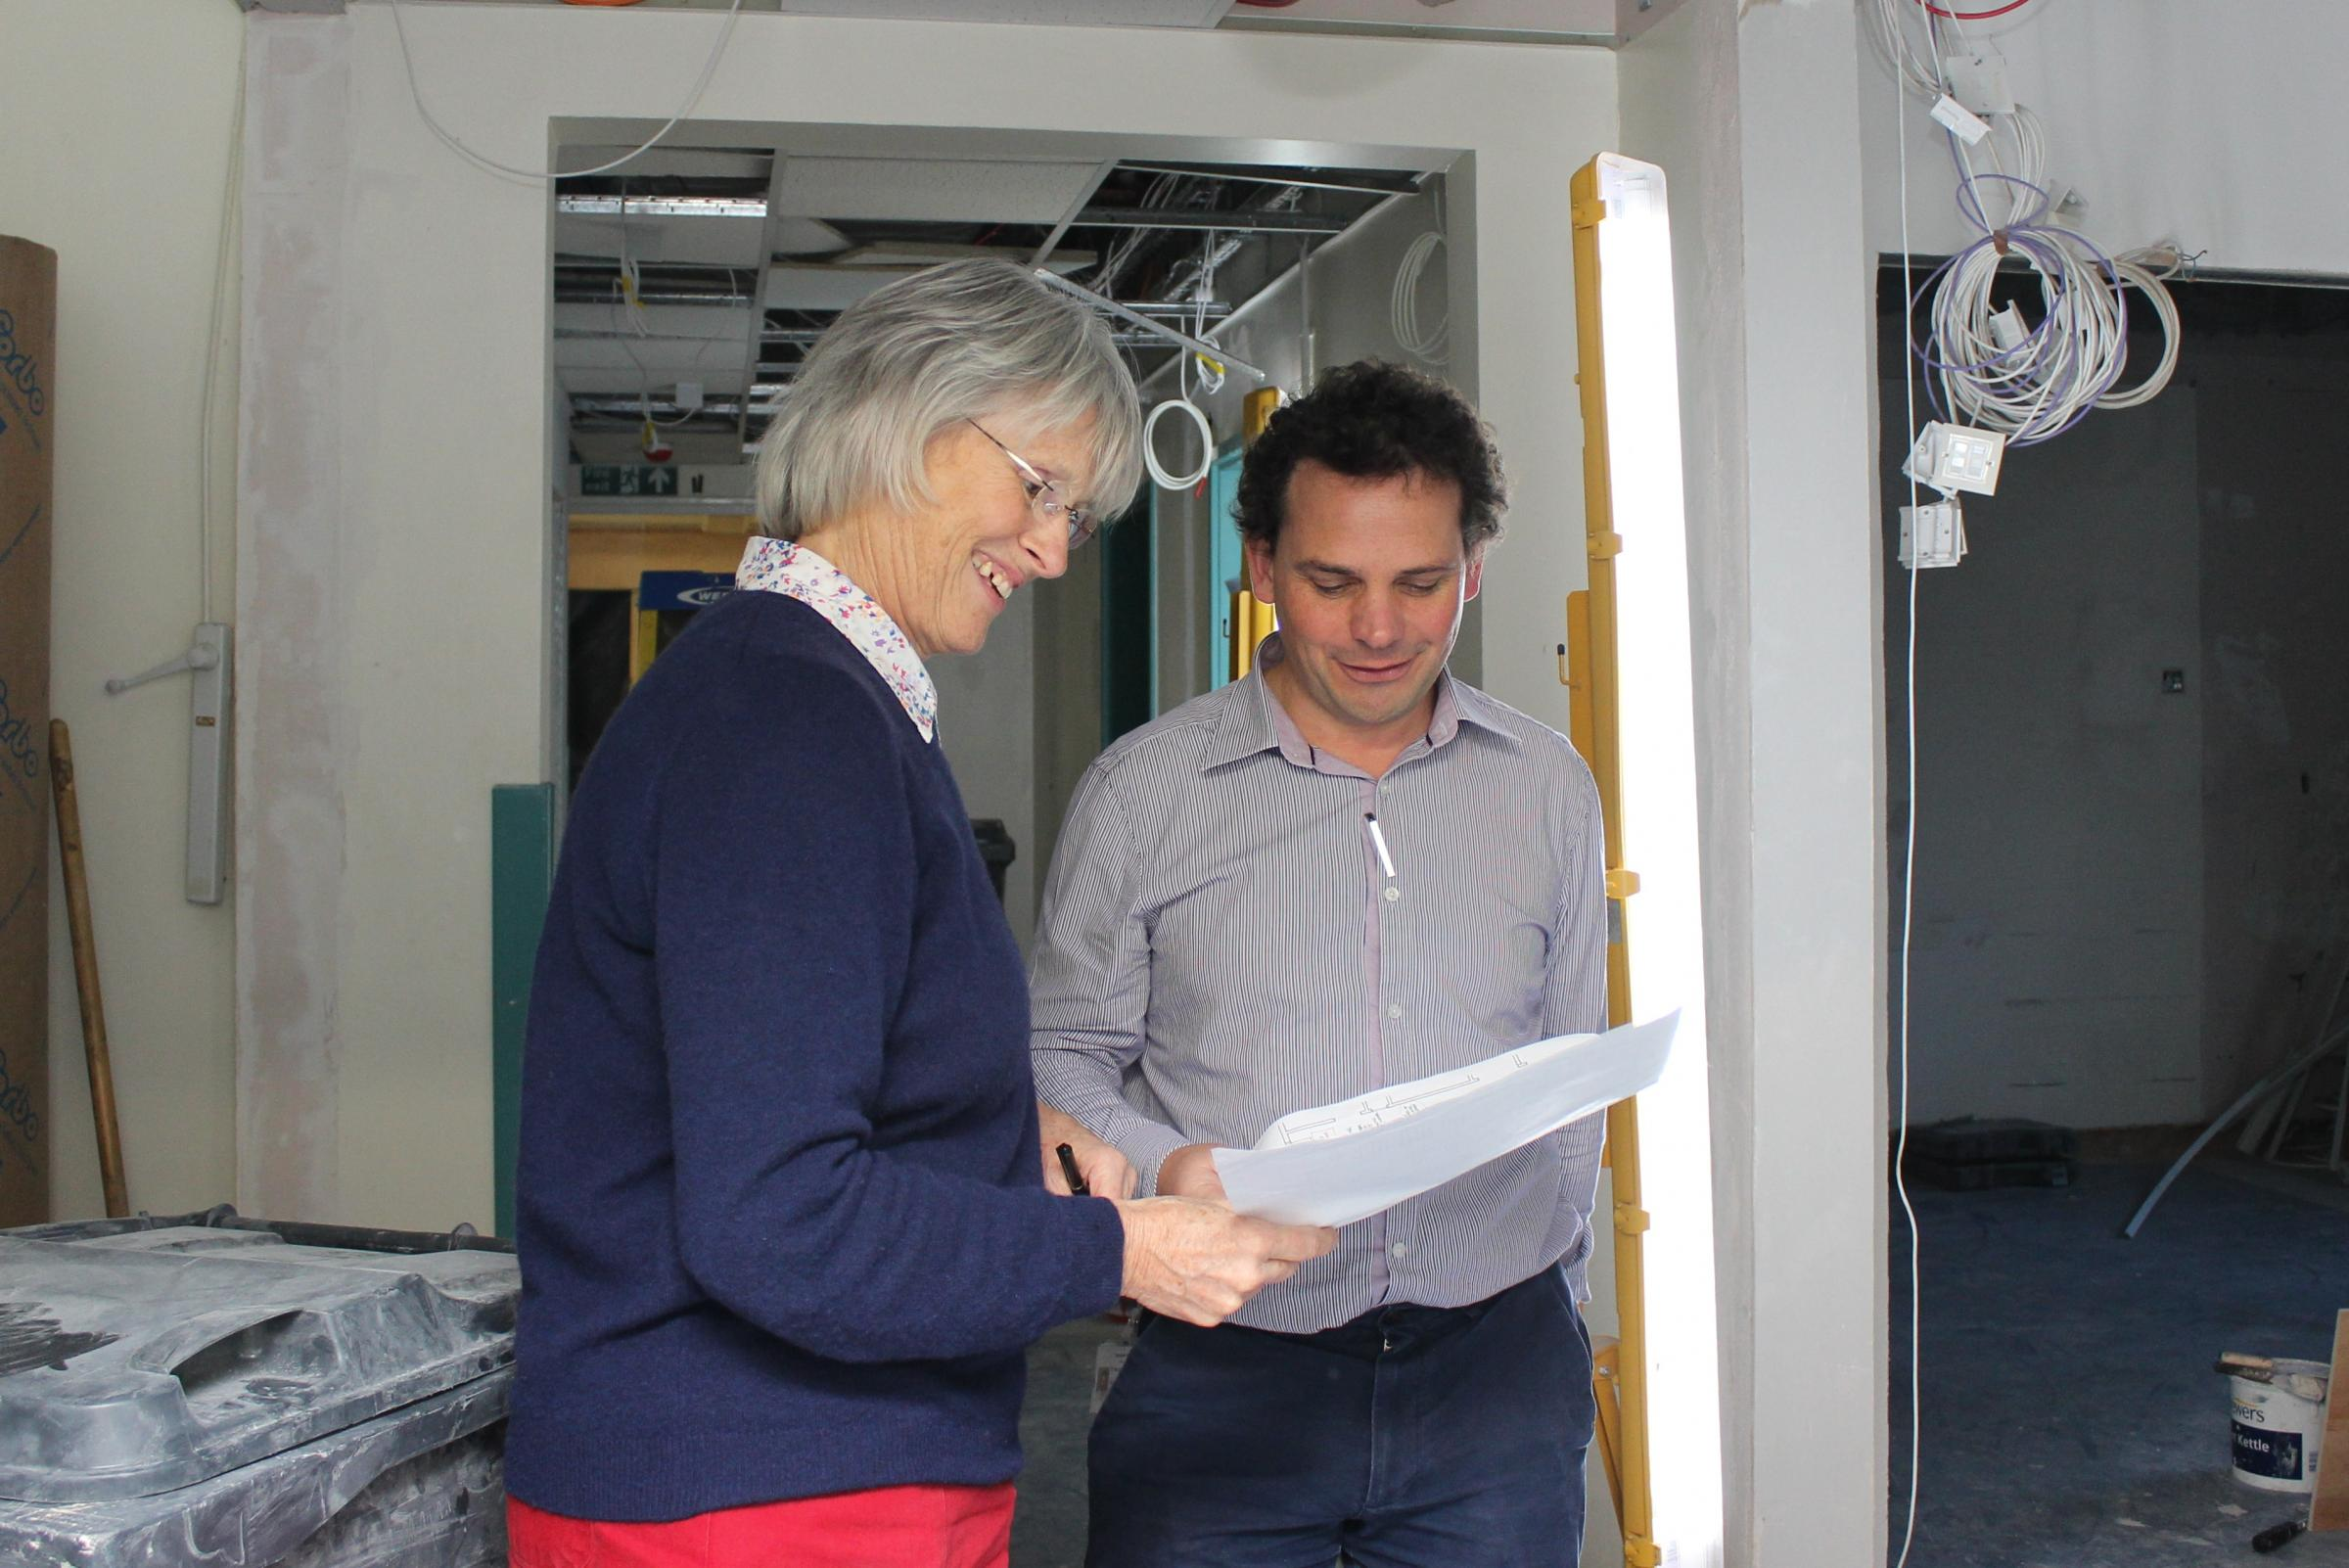 Trish LeFlufy, clinical services manager for child health, and Dr Nick Ward, consultant paediatrician, look at the plans for the new paediatric assessment unit at Basingstoke and North Hampshire Hospital.